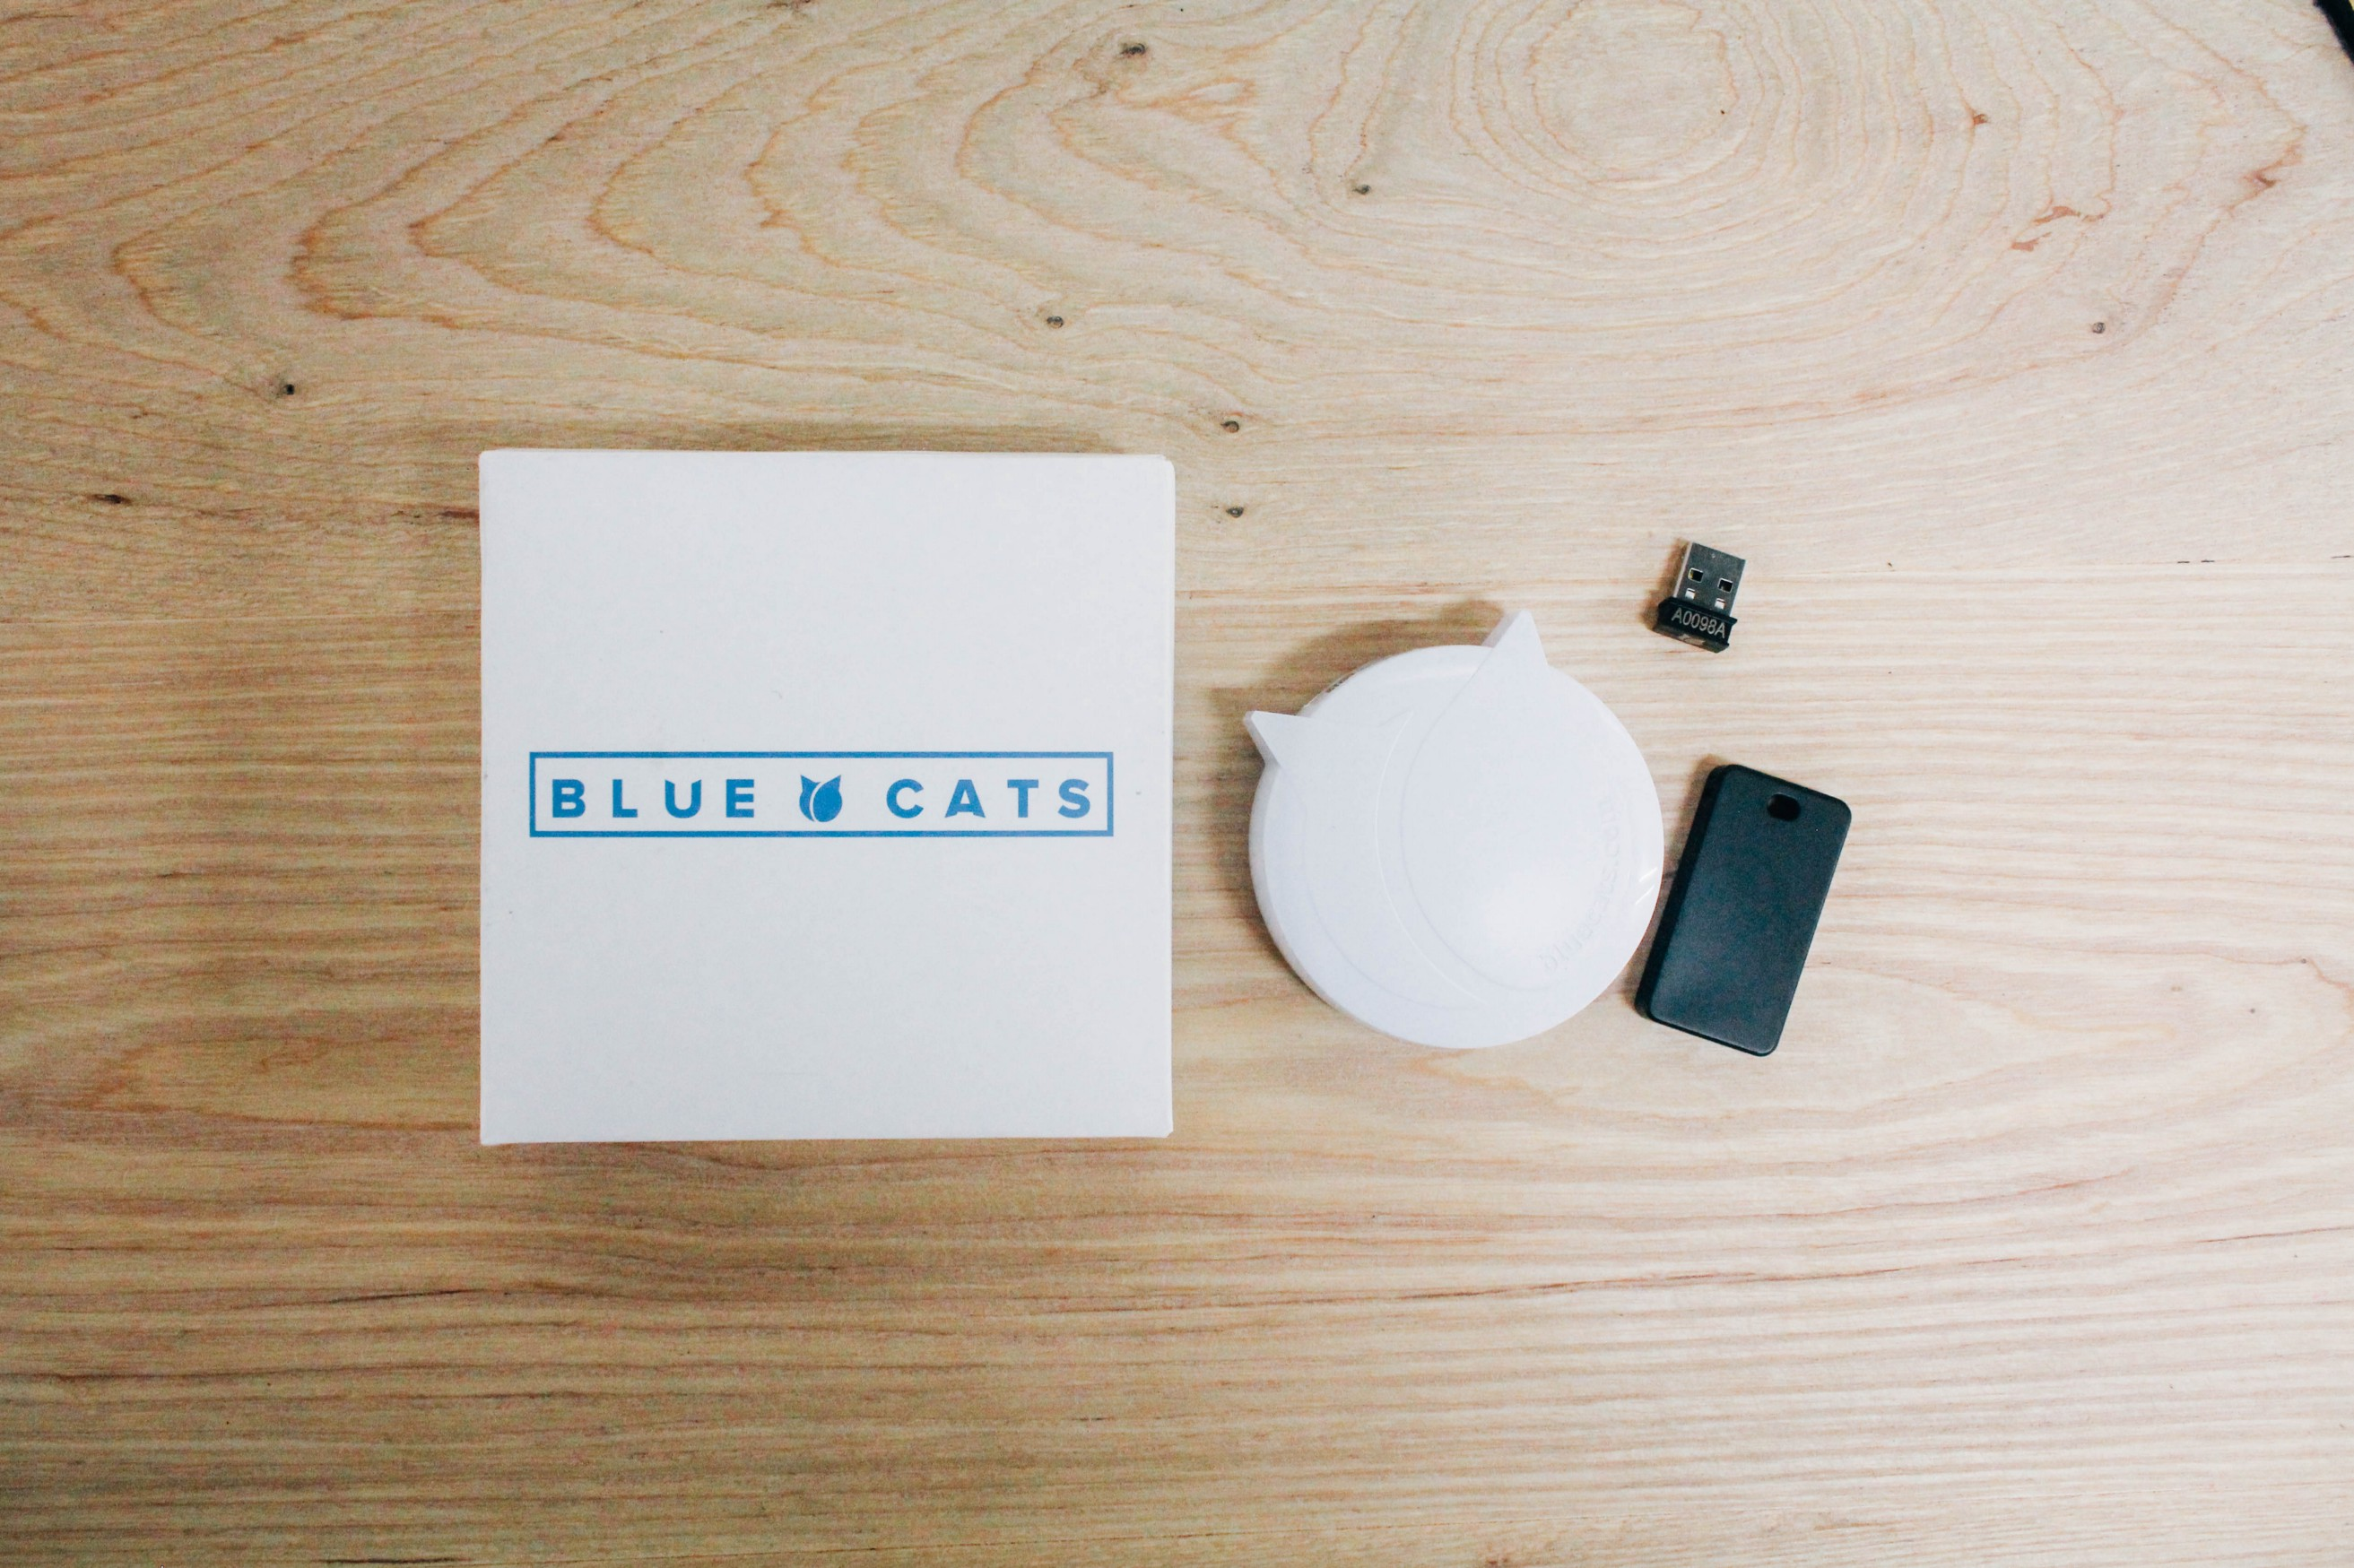 Hacking with iBeacons: What I wish I'd known - Combo - Medium